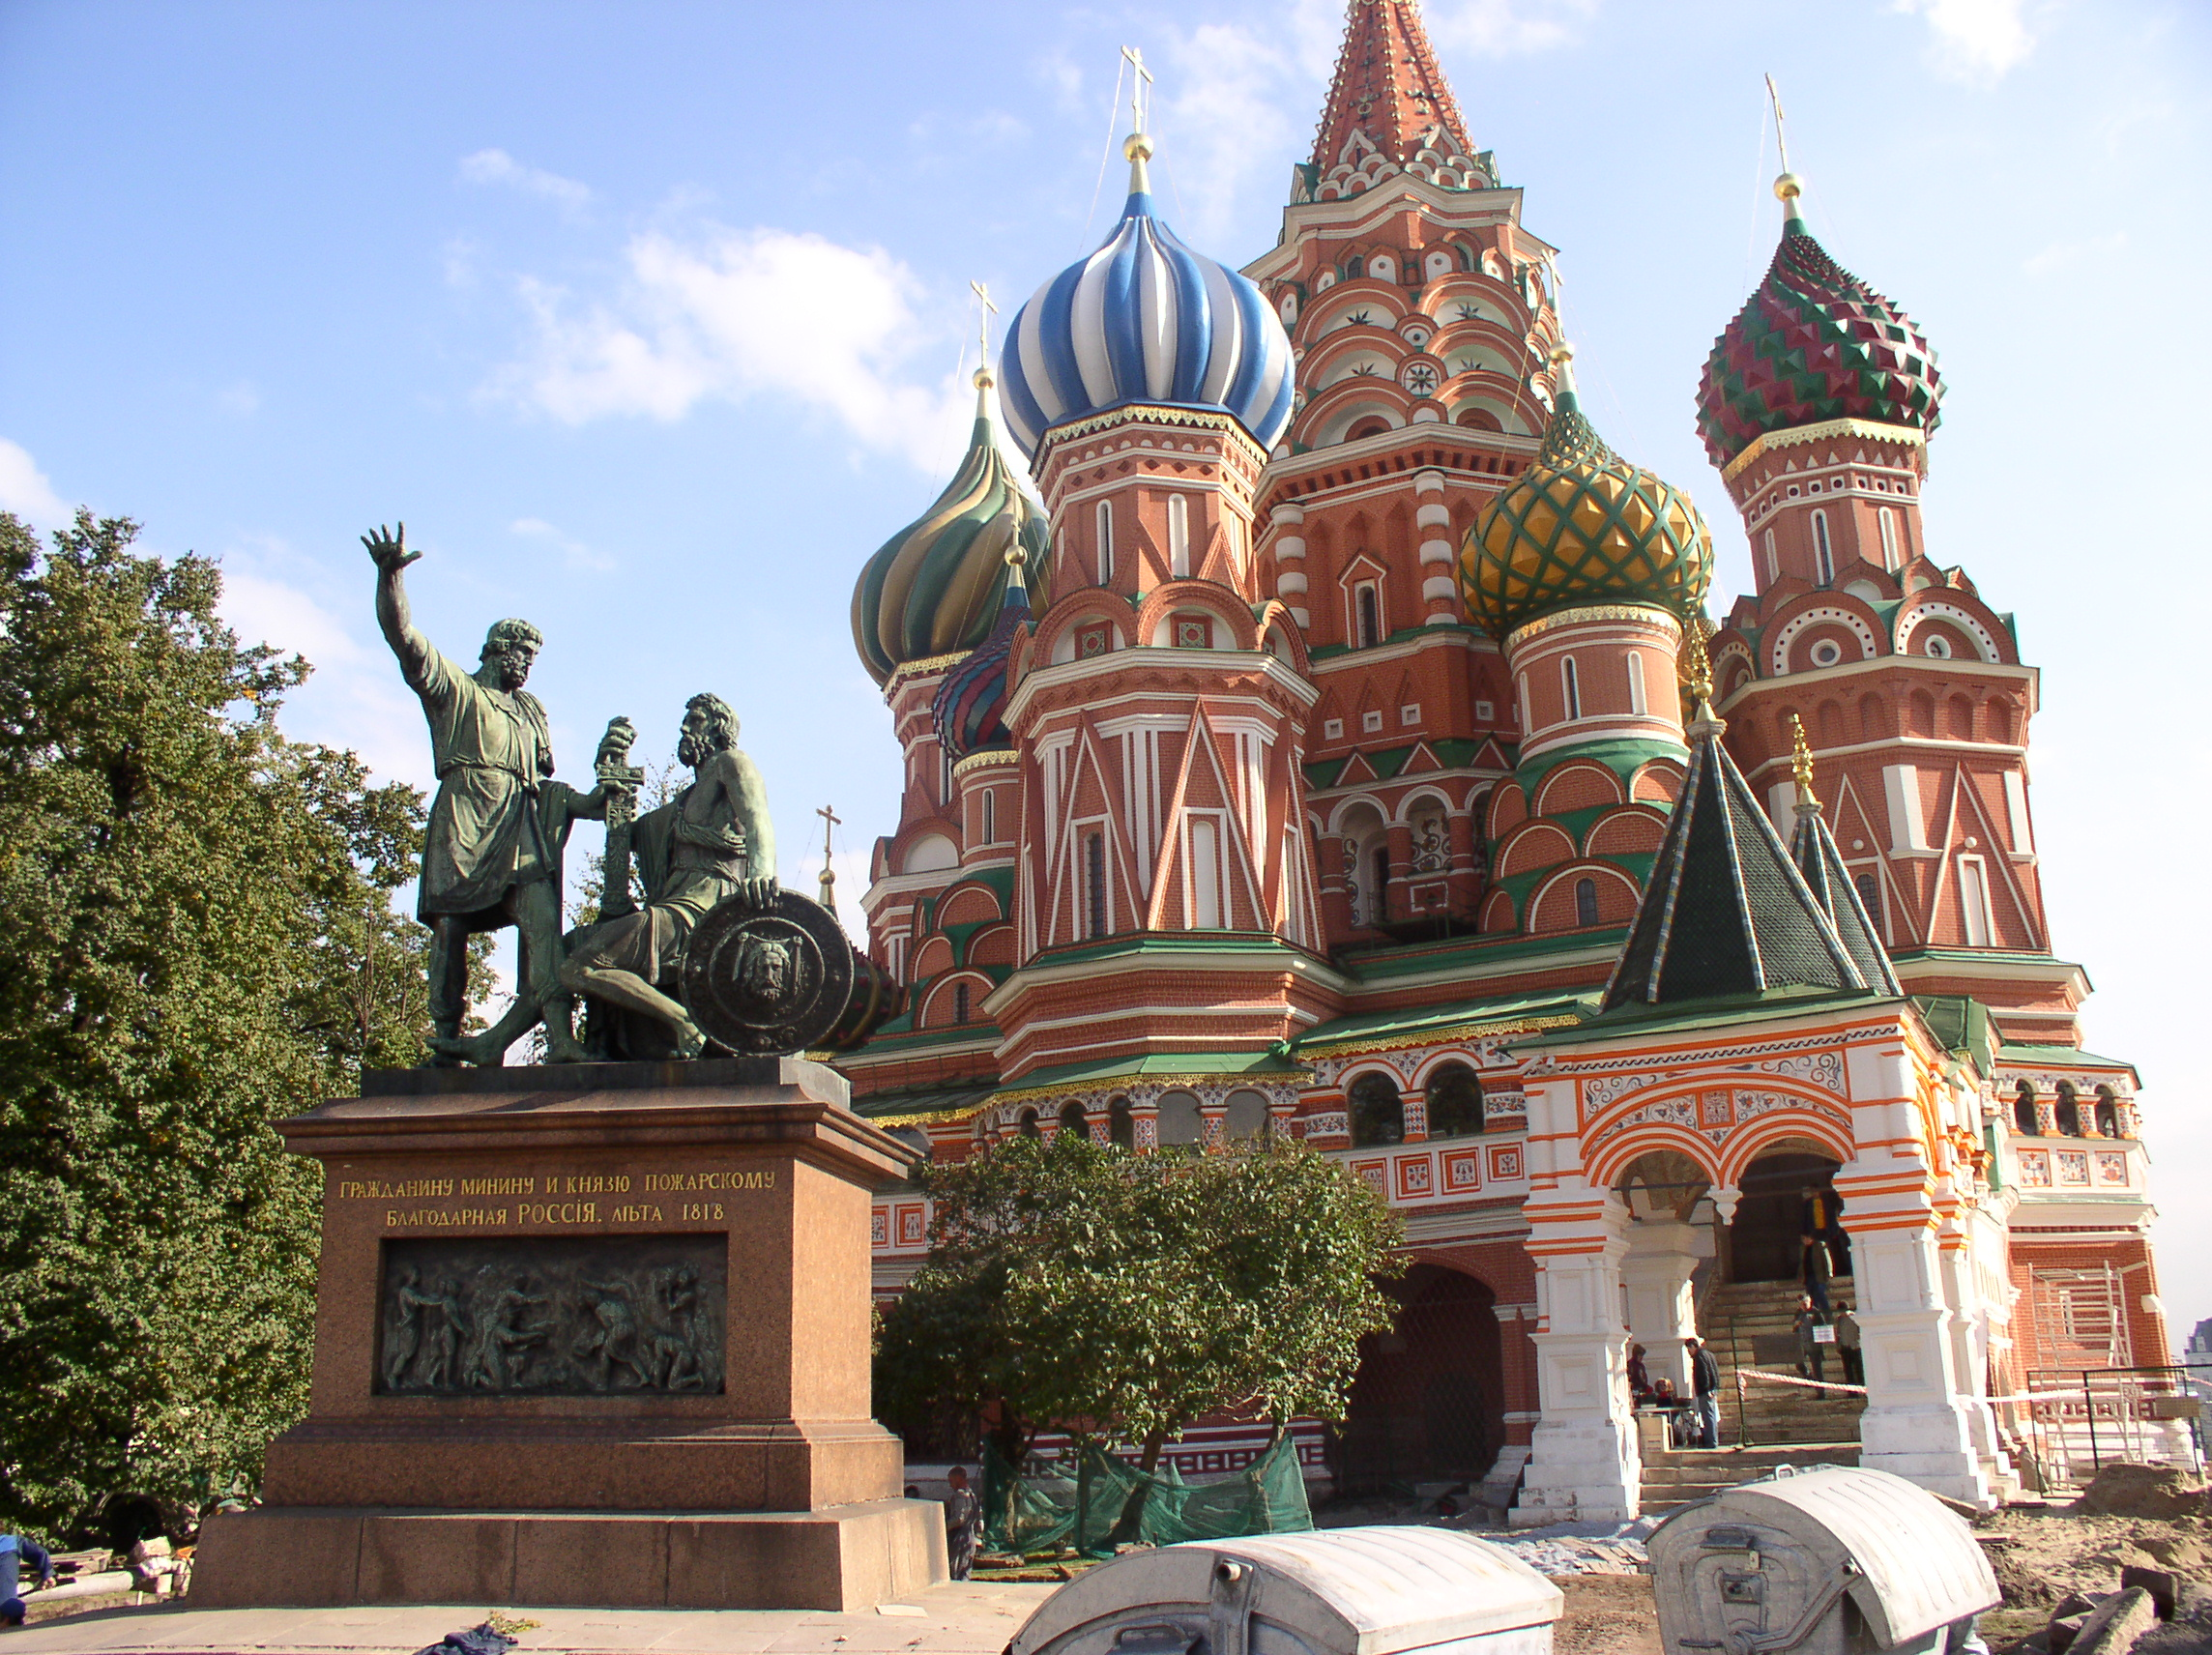 File:Russia-Moscow-Saint Basil\u0027s Cathedral-5.jpg - Wikimedia Commons